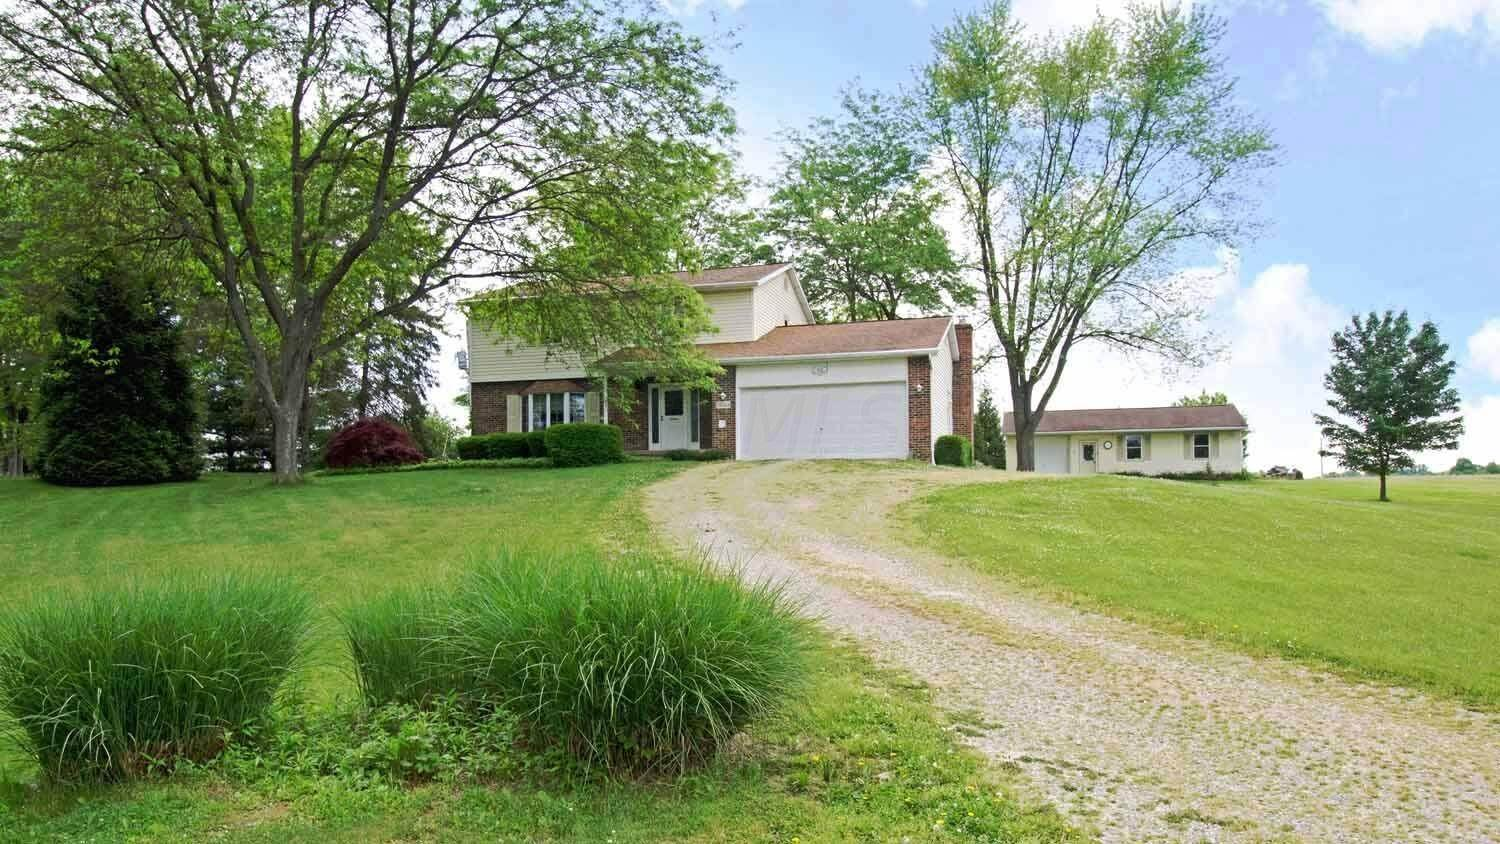 Single Family Homes for Sale at 13244 Heimberger Baltimore, Ohio 43105 United States